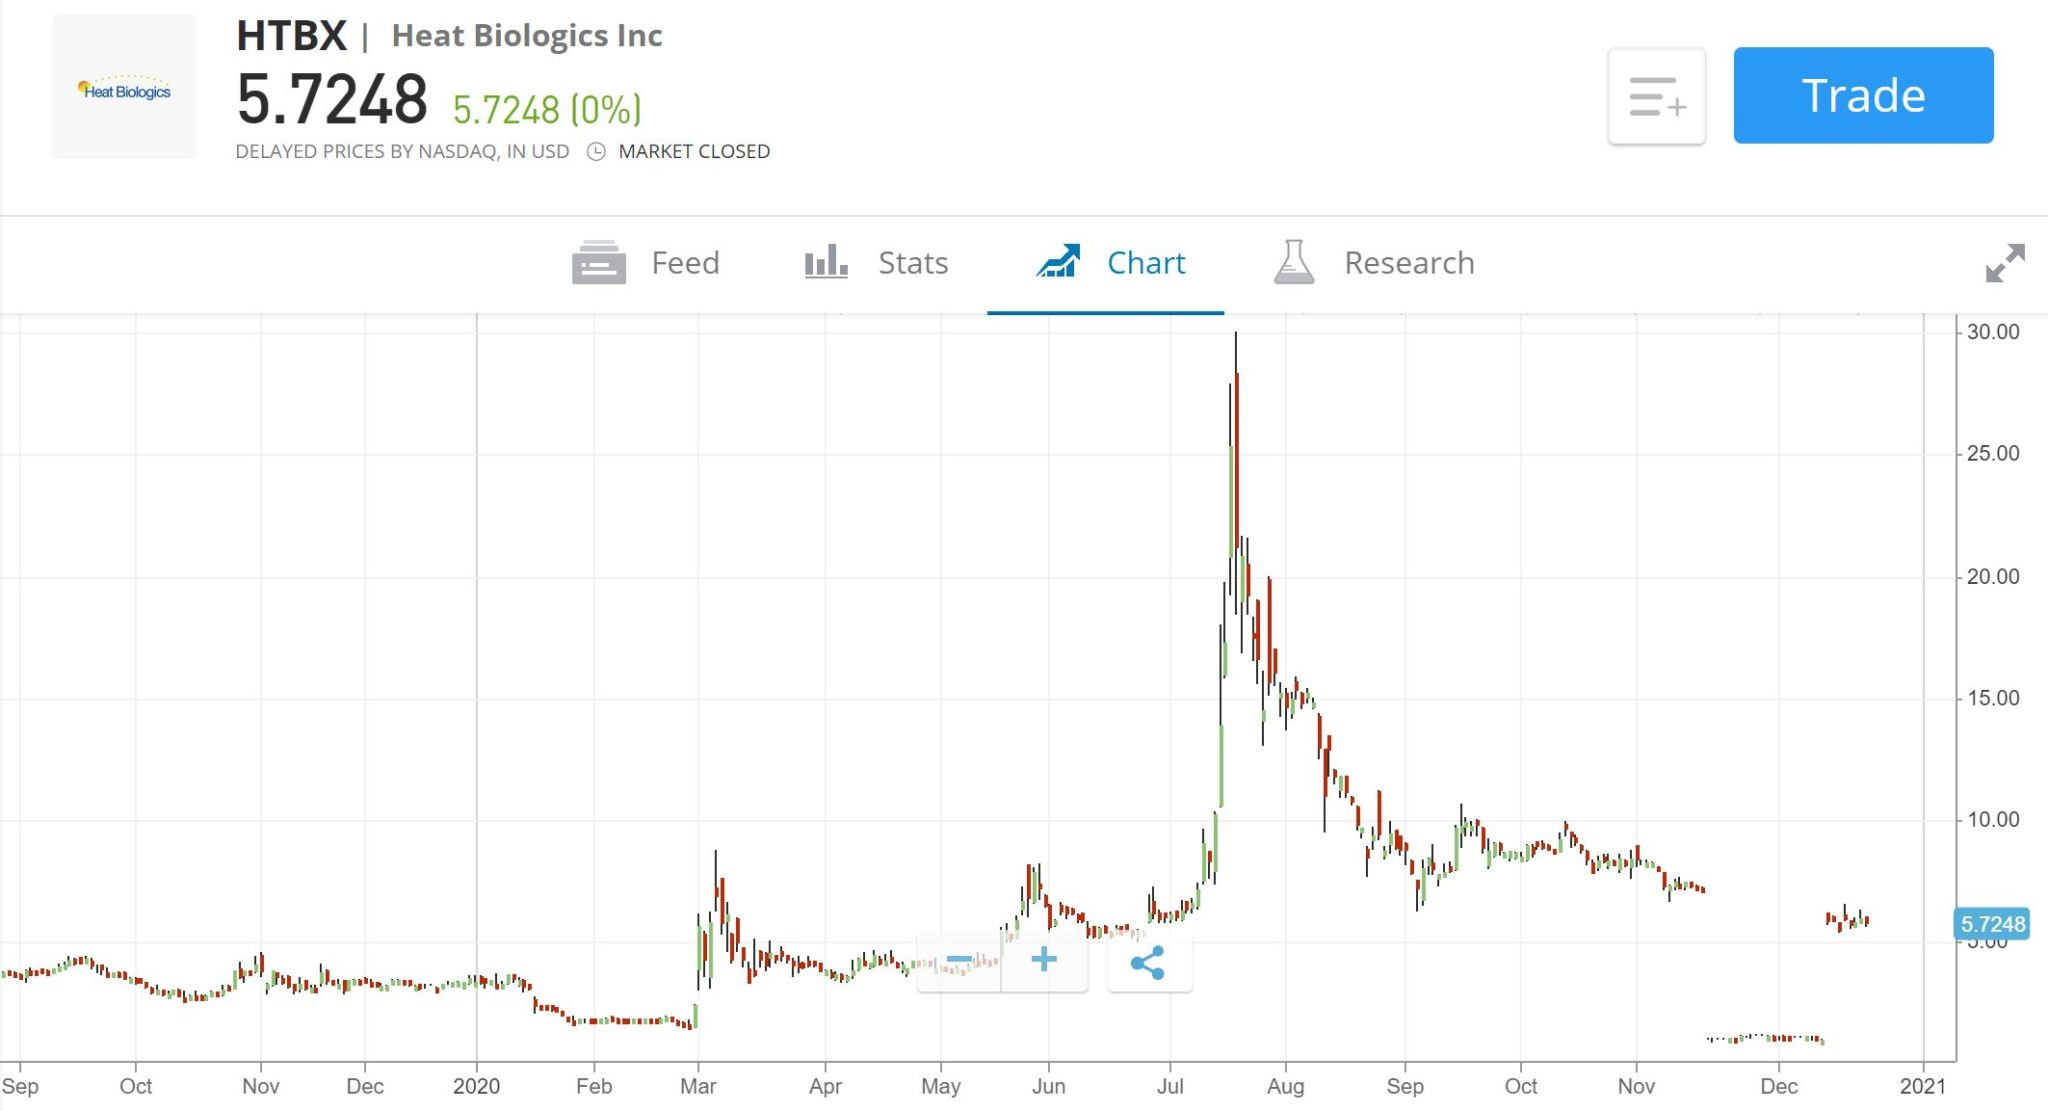 Heat Biologics Stock Price Chart